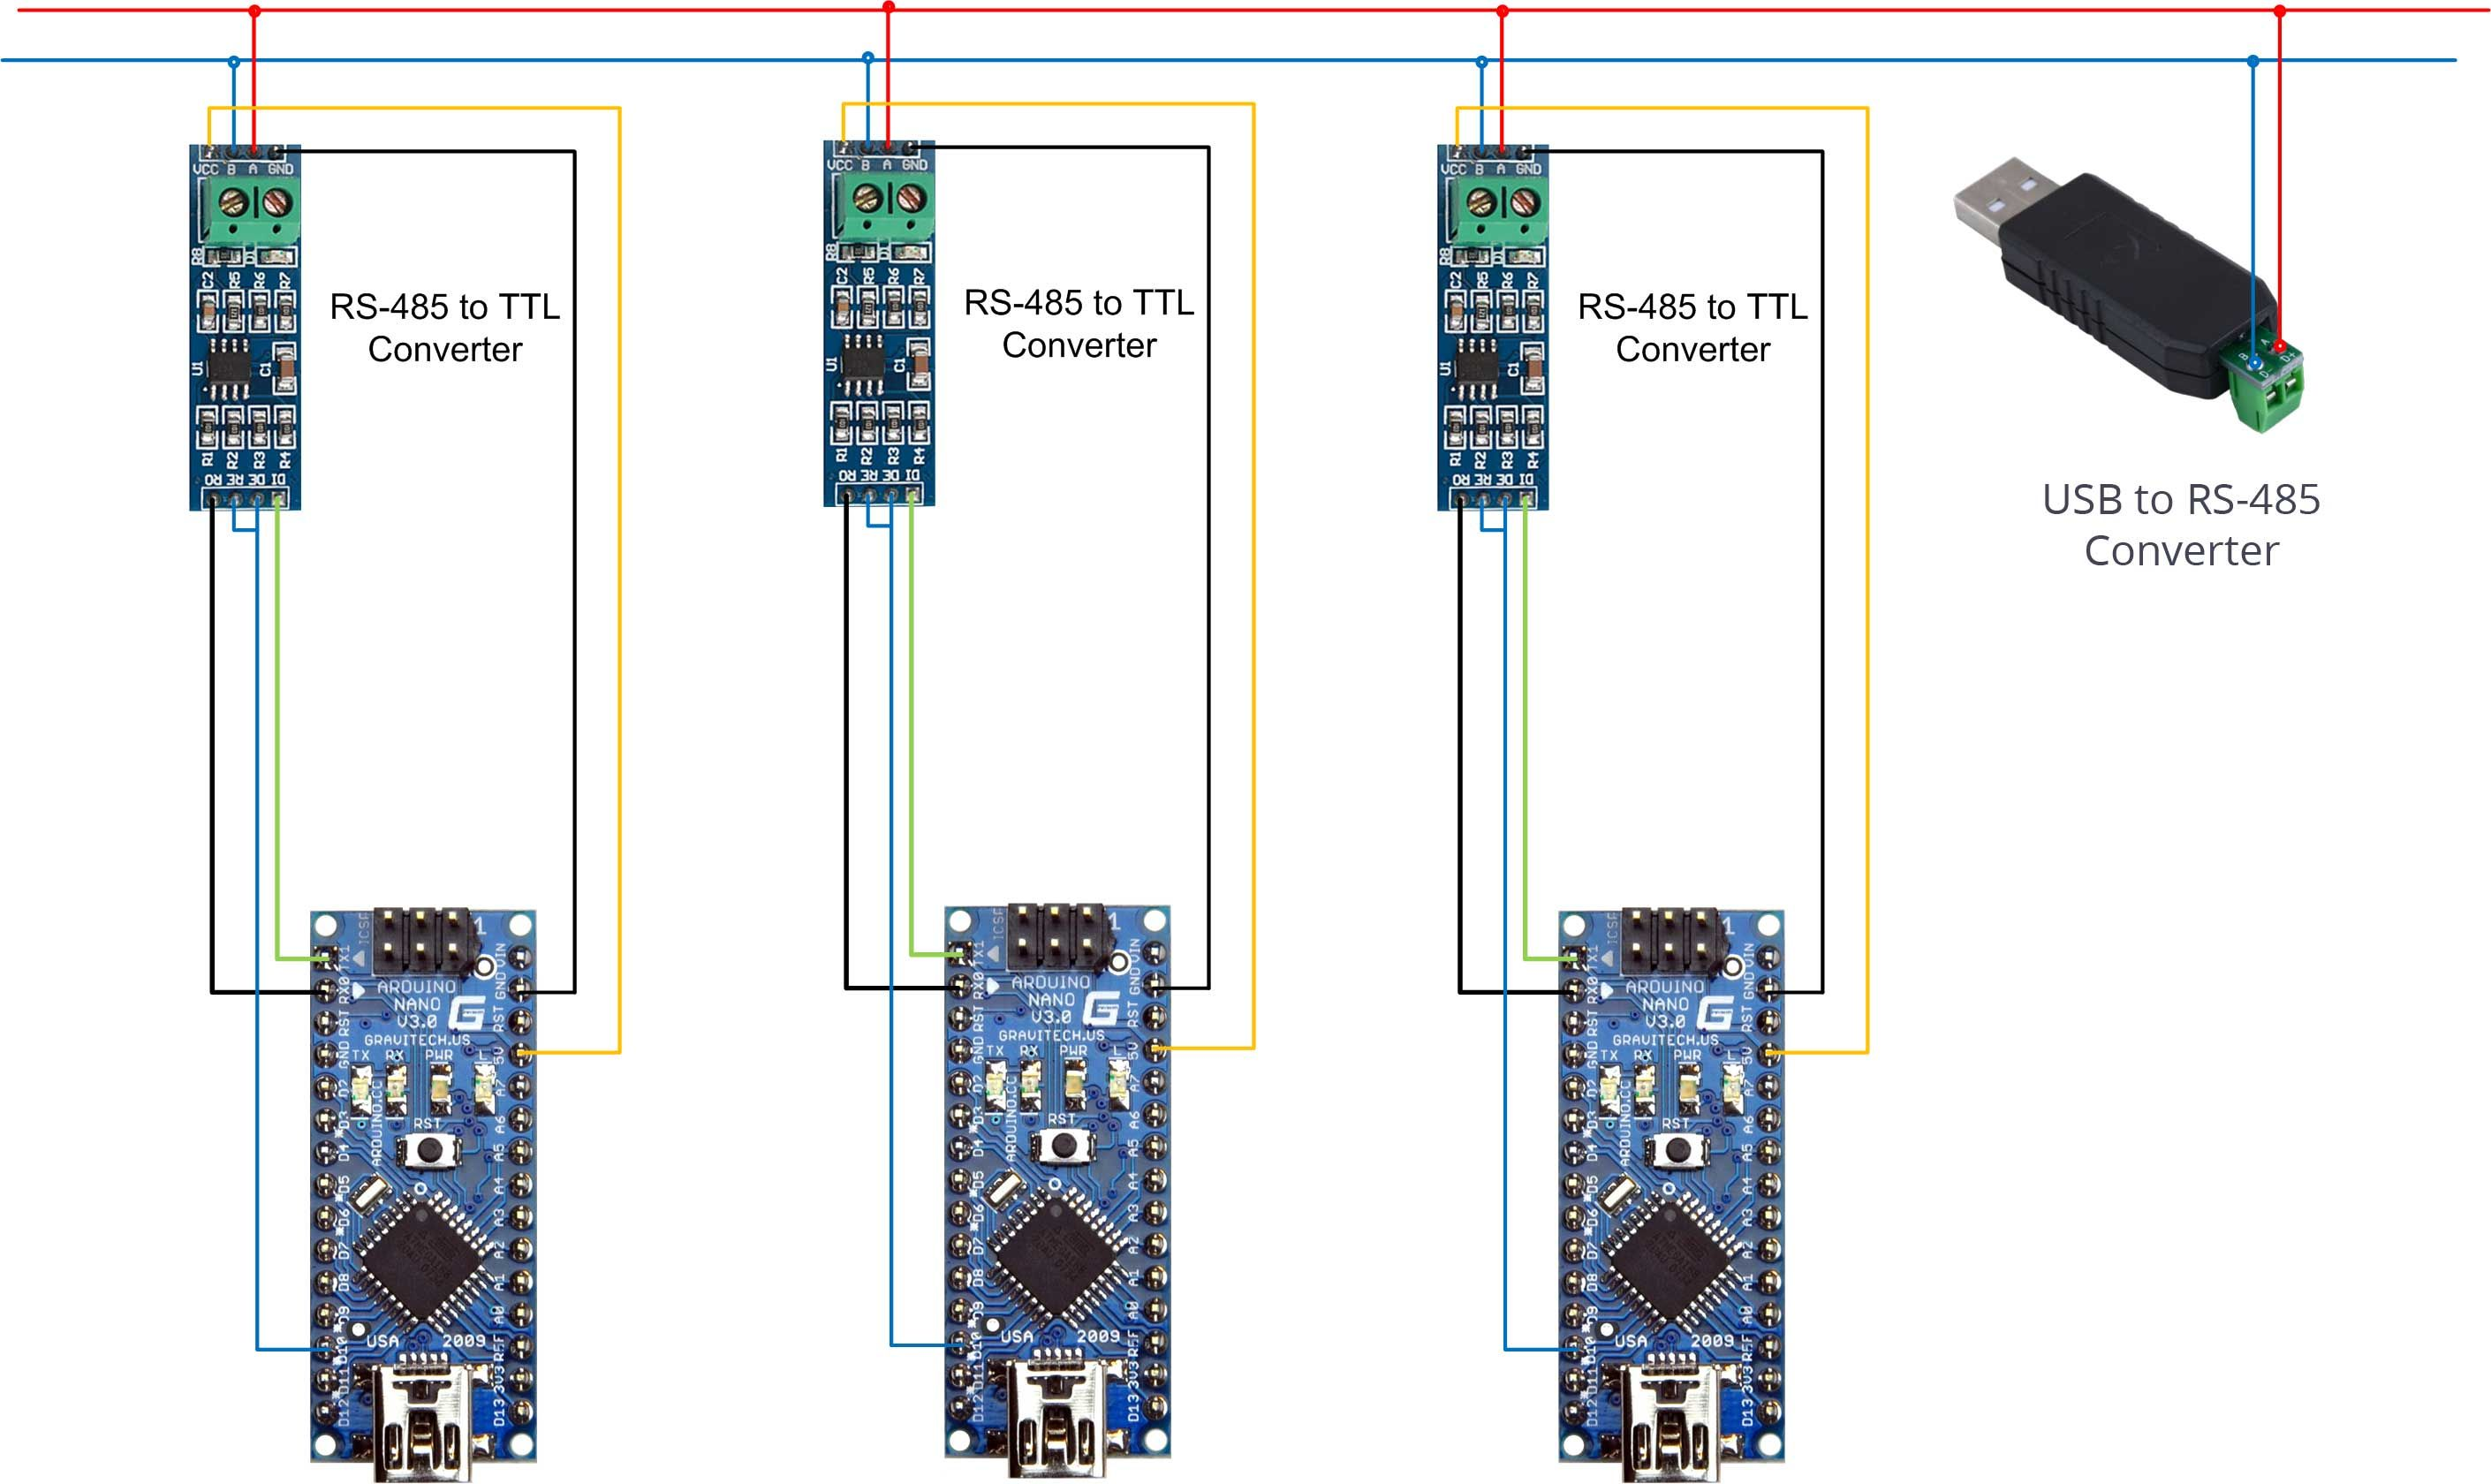 Connecting RS-485 to TTL converter for Arduino -- RS-485 on the